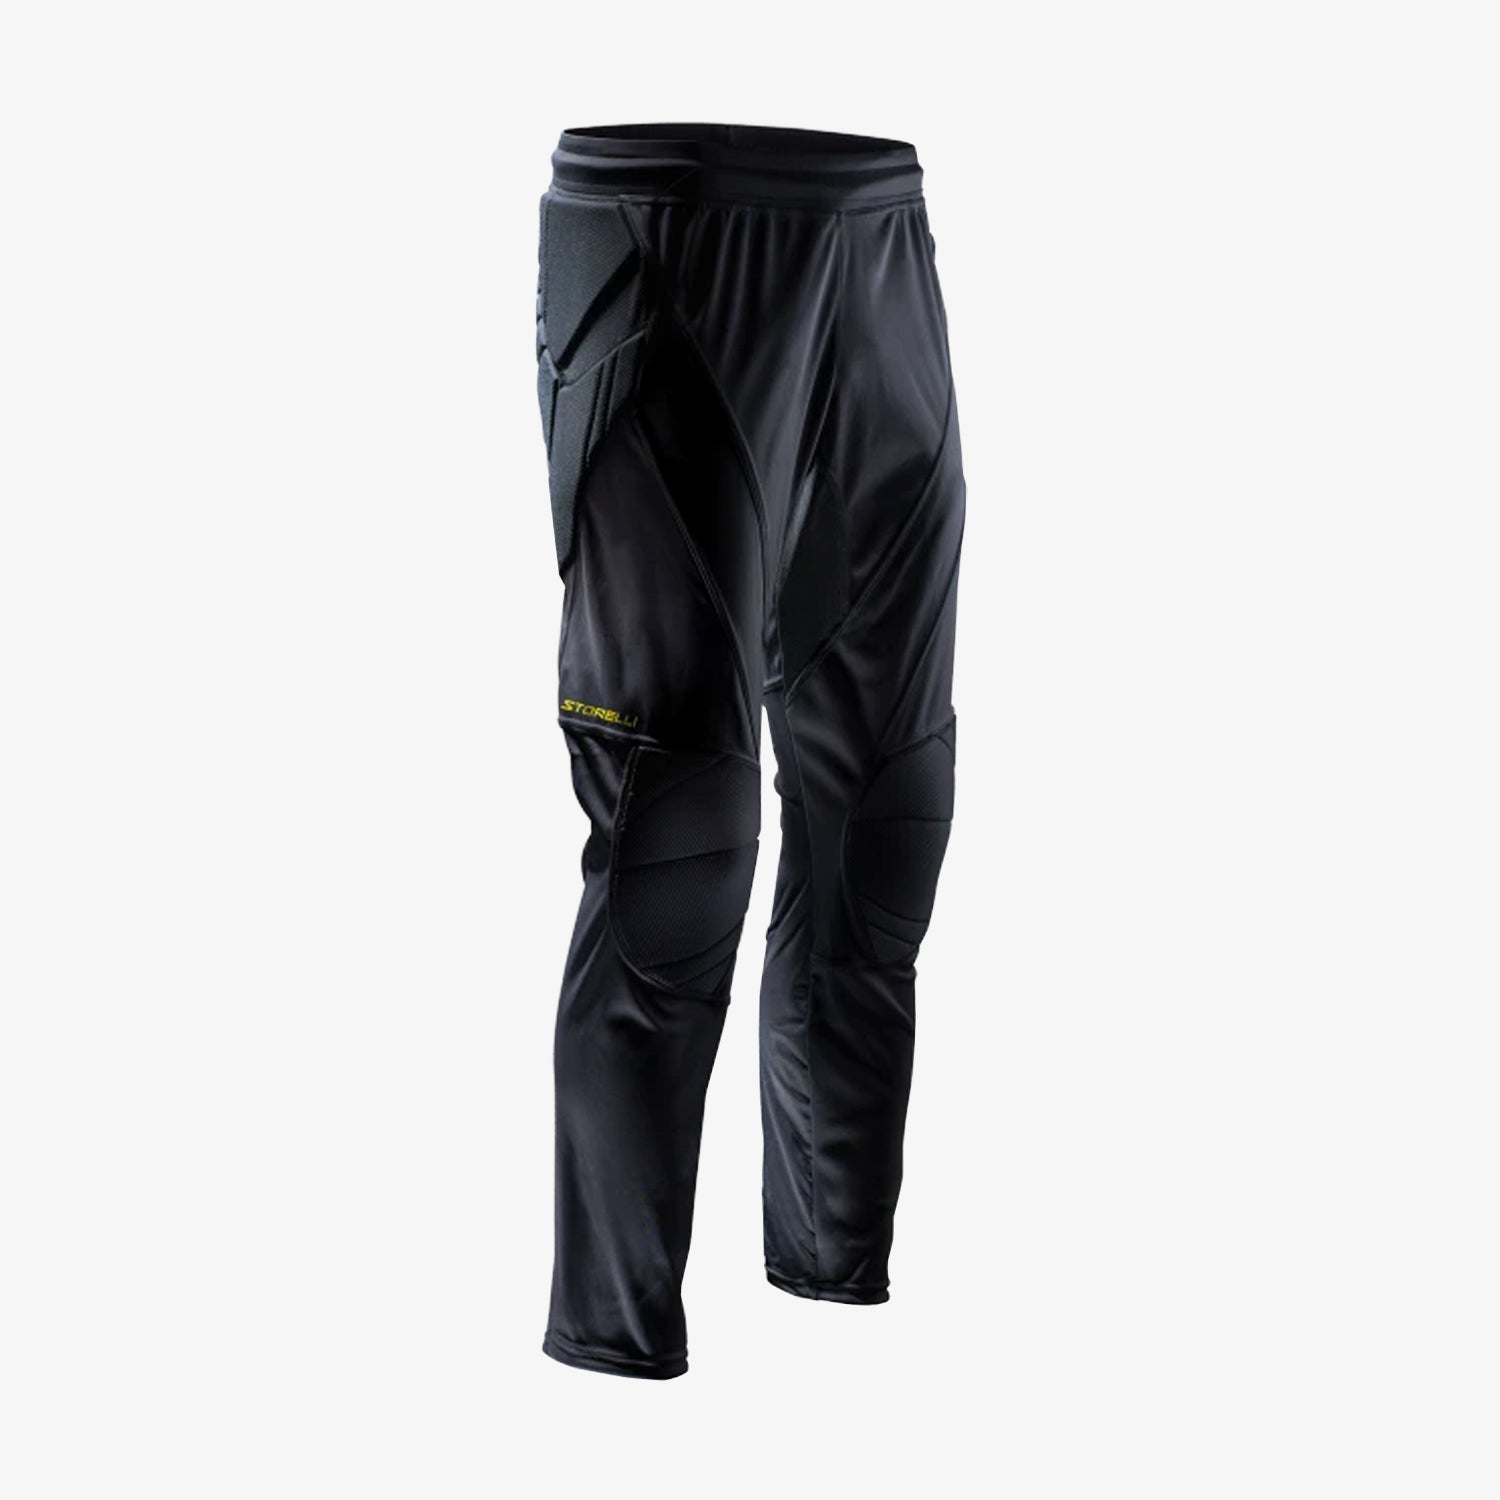 Men's Exoshield Goalkeeper Pants